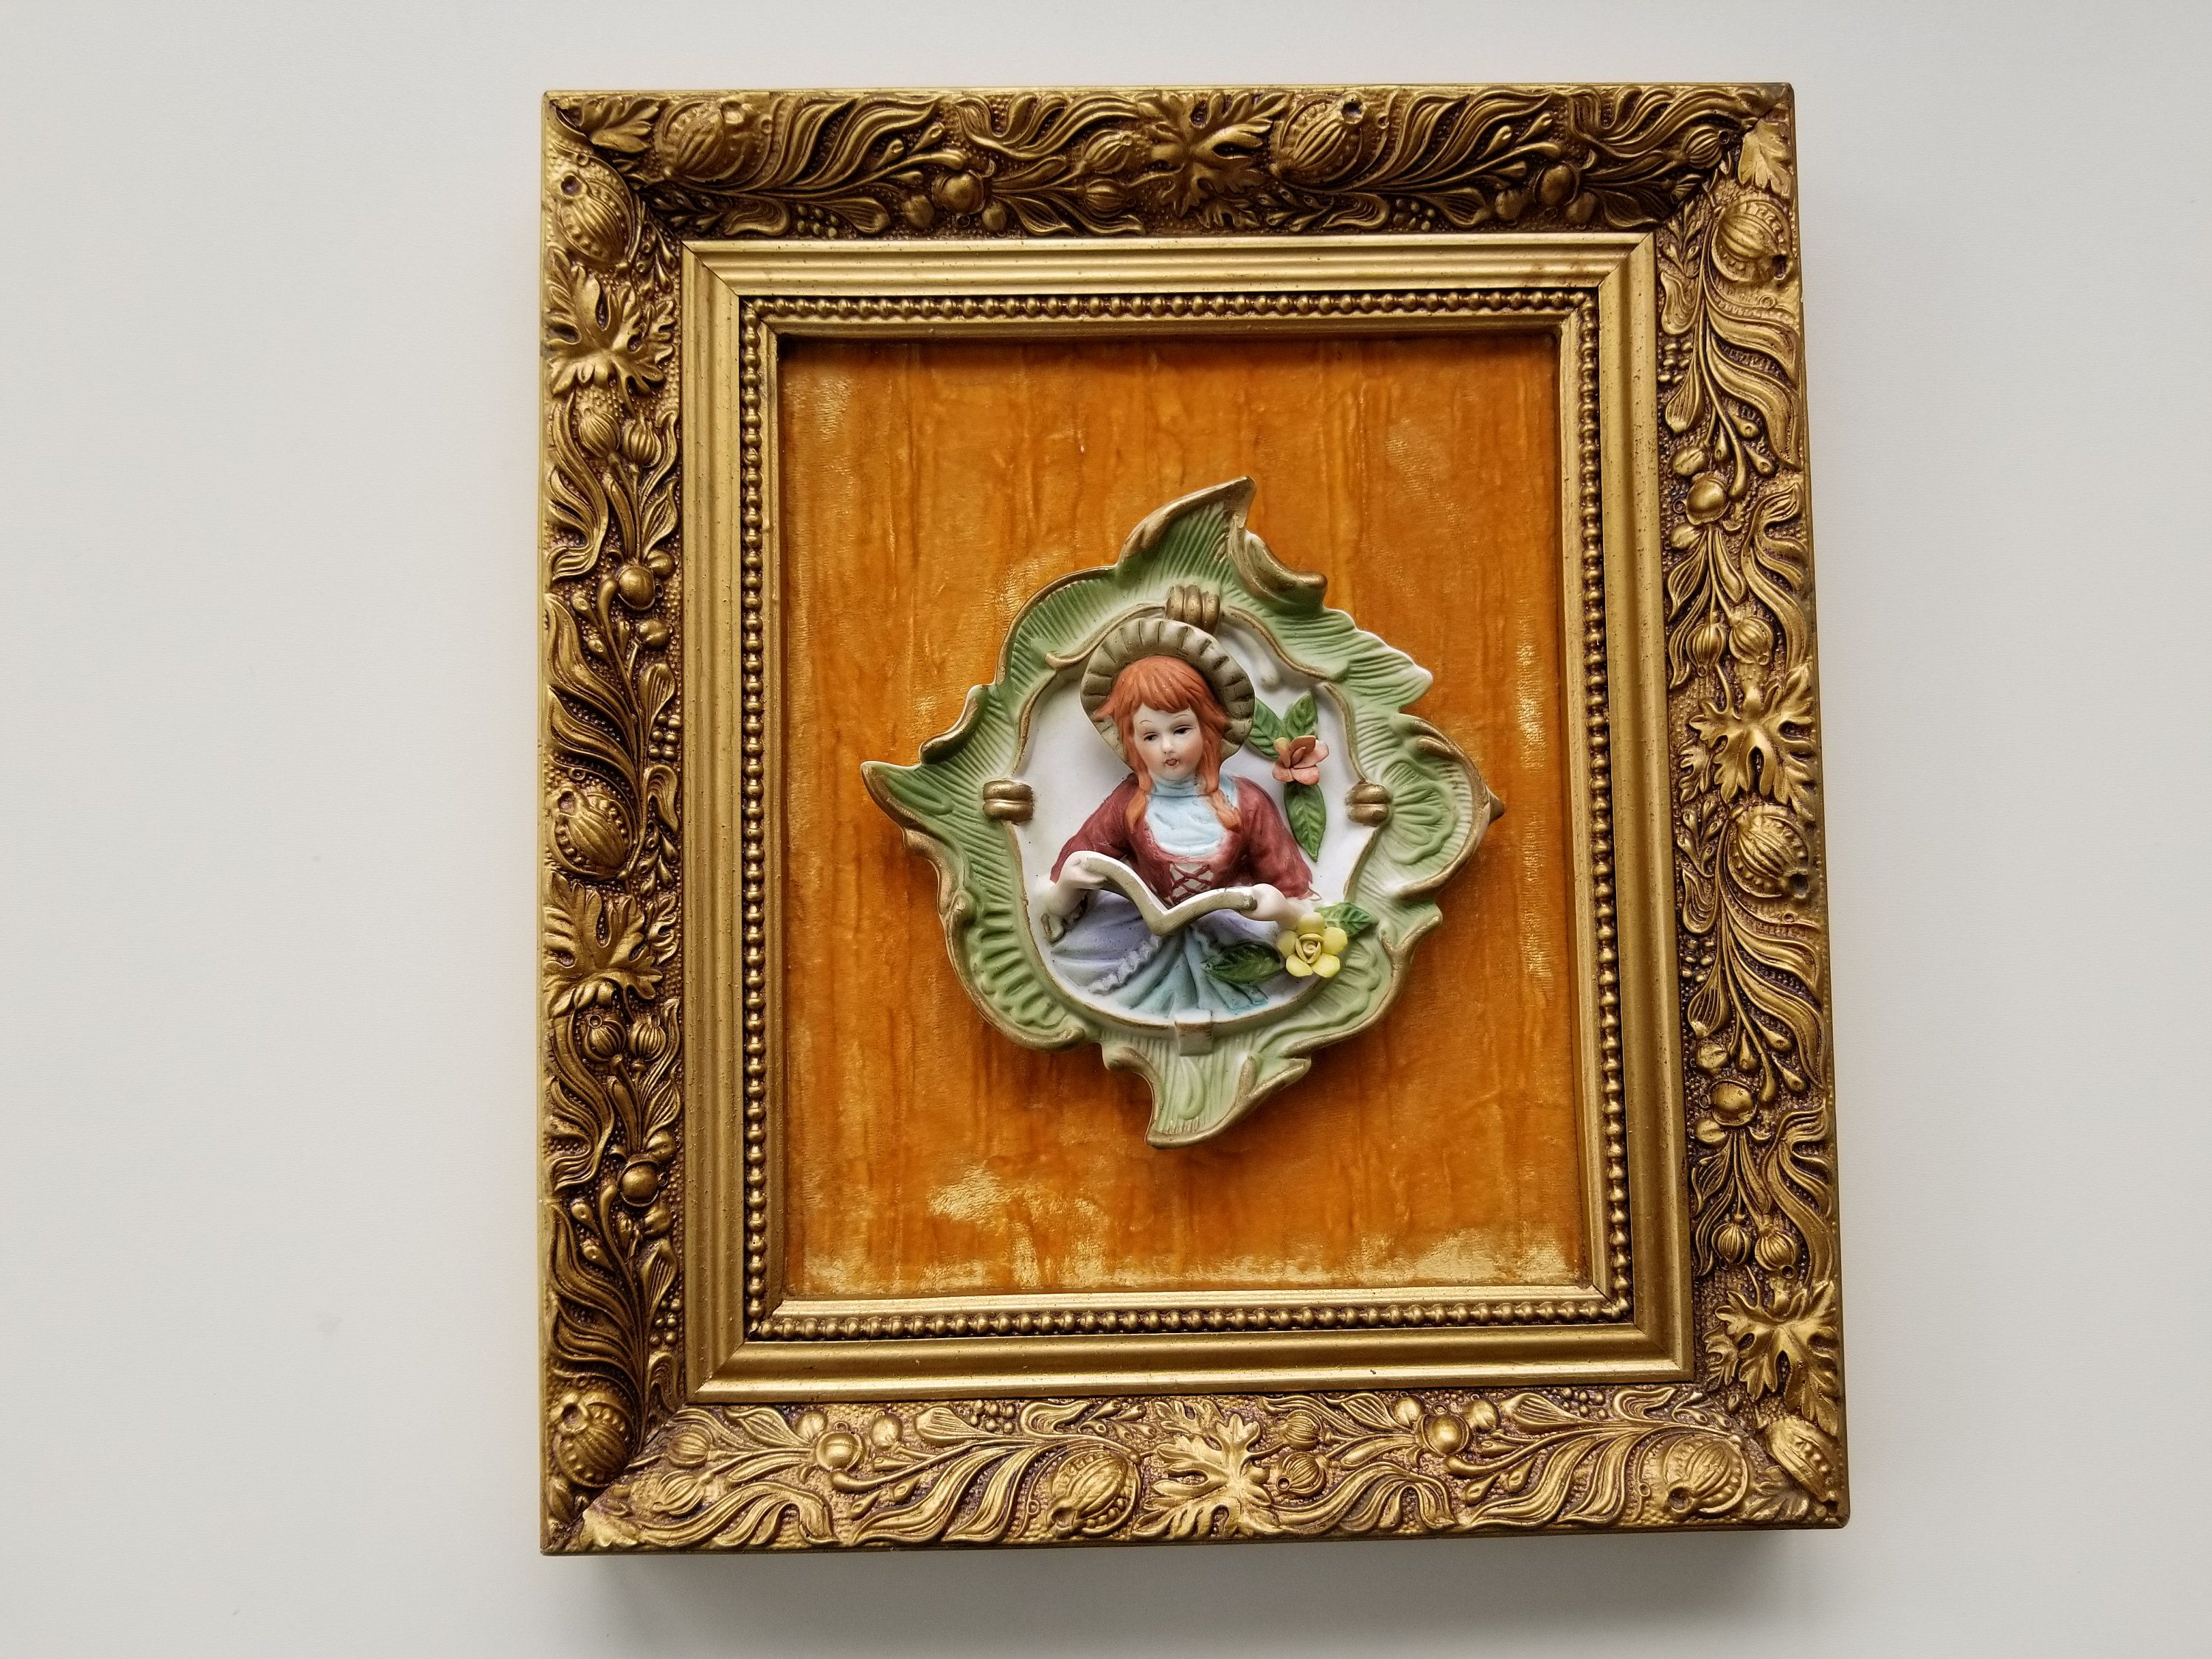 Ships In April Ornately Framed Porcelain Singer Figurine With Velvet Background 15 By 13 Inch Framed Singer Wall Hanging Gold Frame In 2020 Wall Hanging Frame Vintage Picture Frames